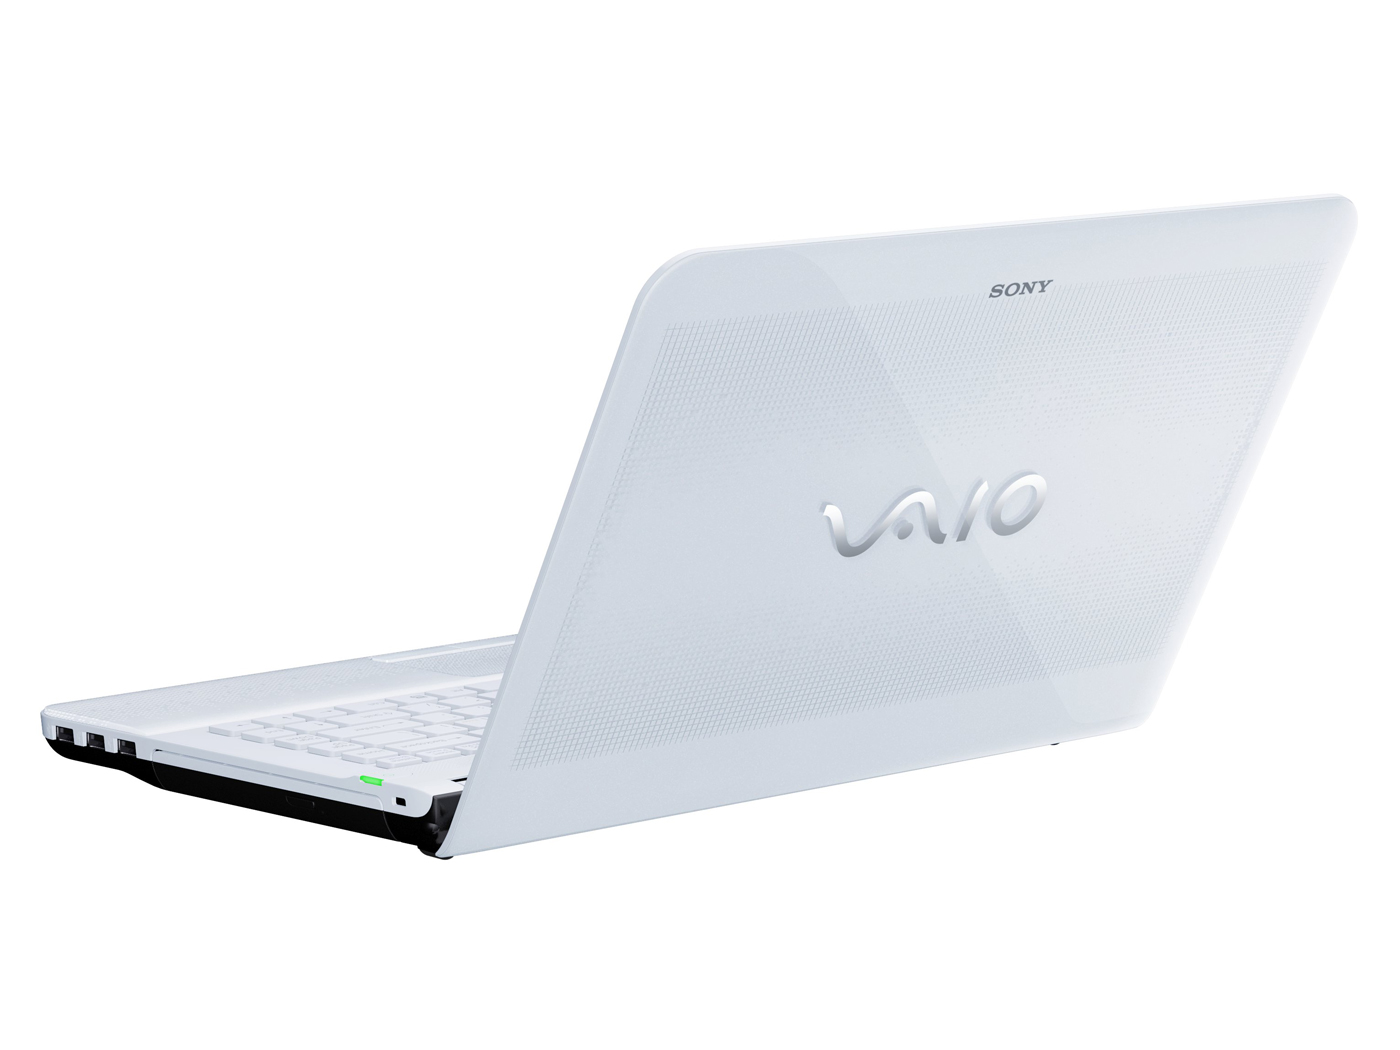 Sony Vaio VPCEC290X/WI Marvell Yukon Ethernet Drivers Update